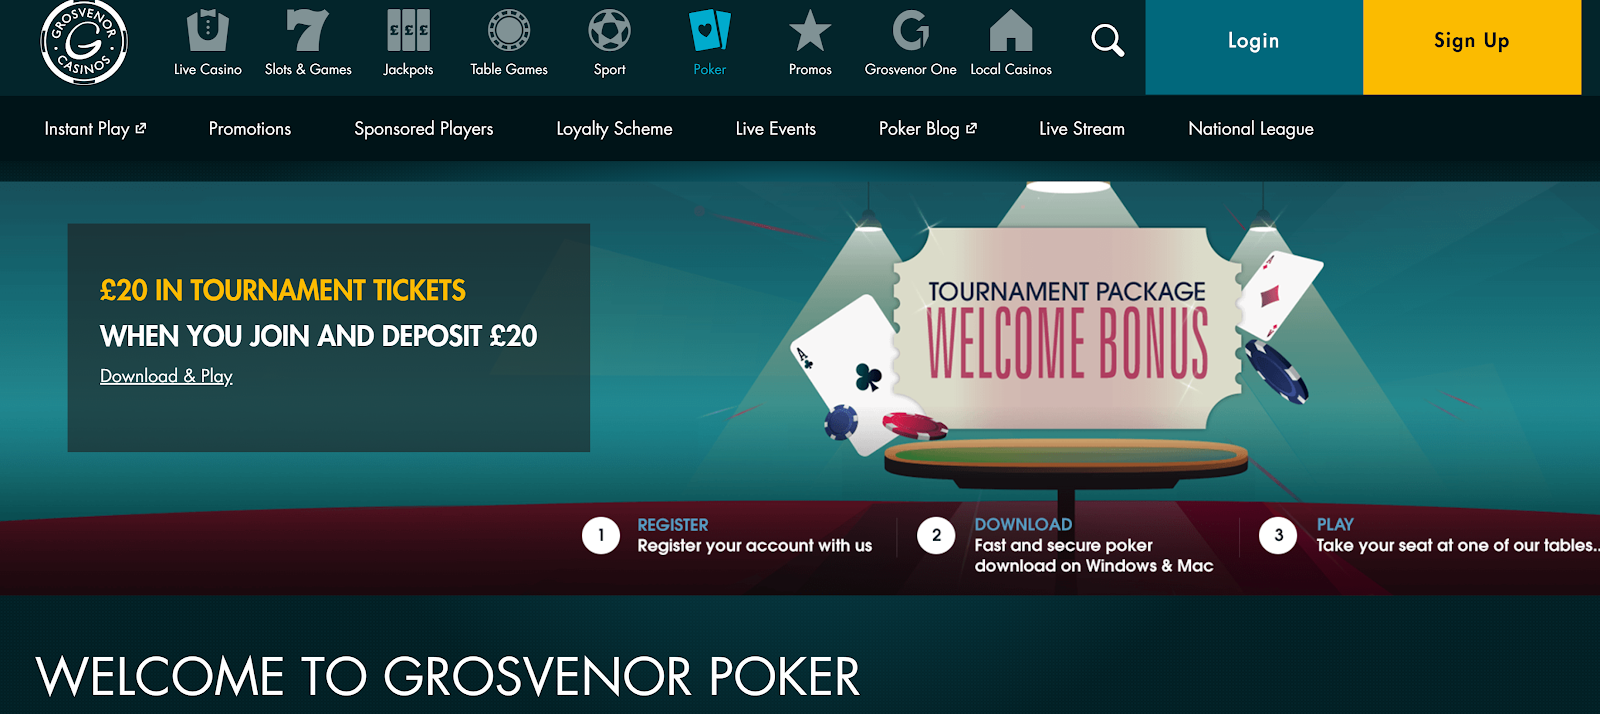 Grosvenor Casinos is an excellent site for live poker games